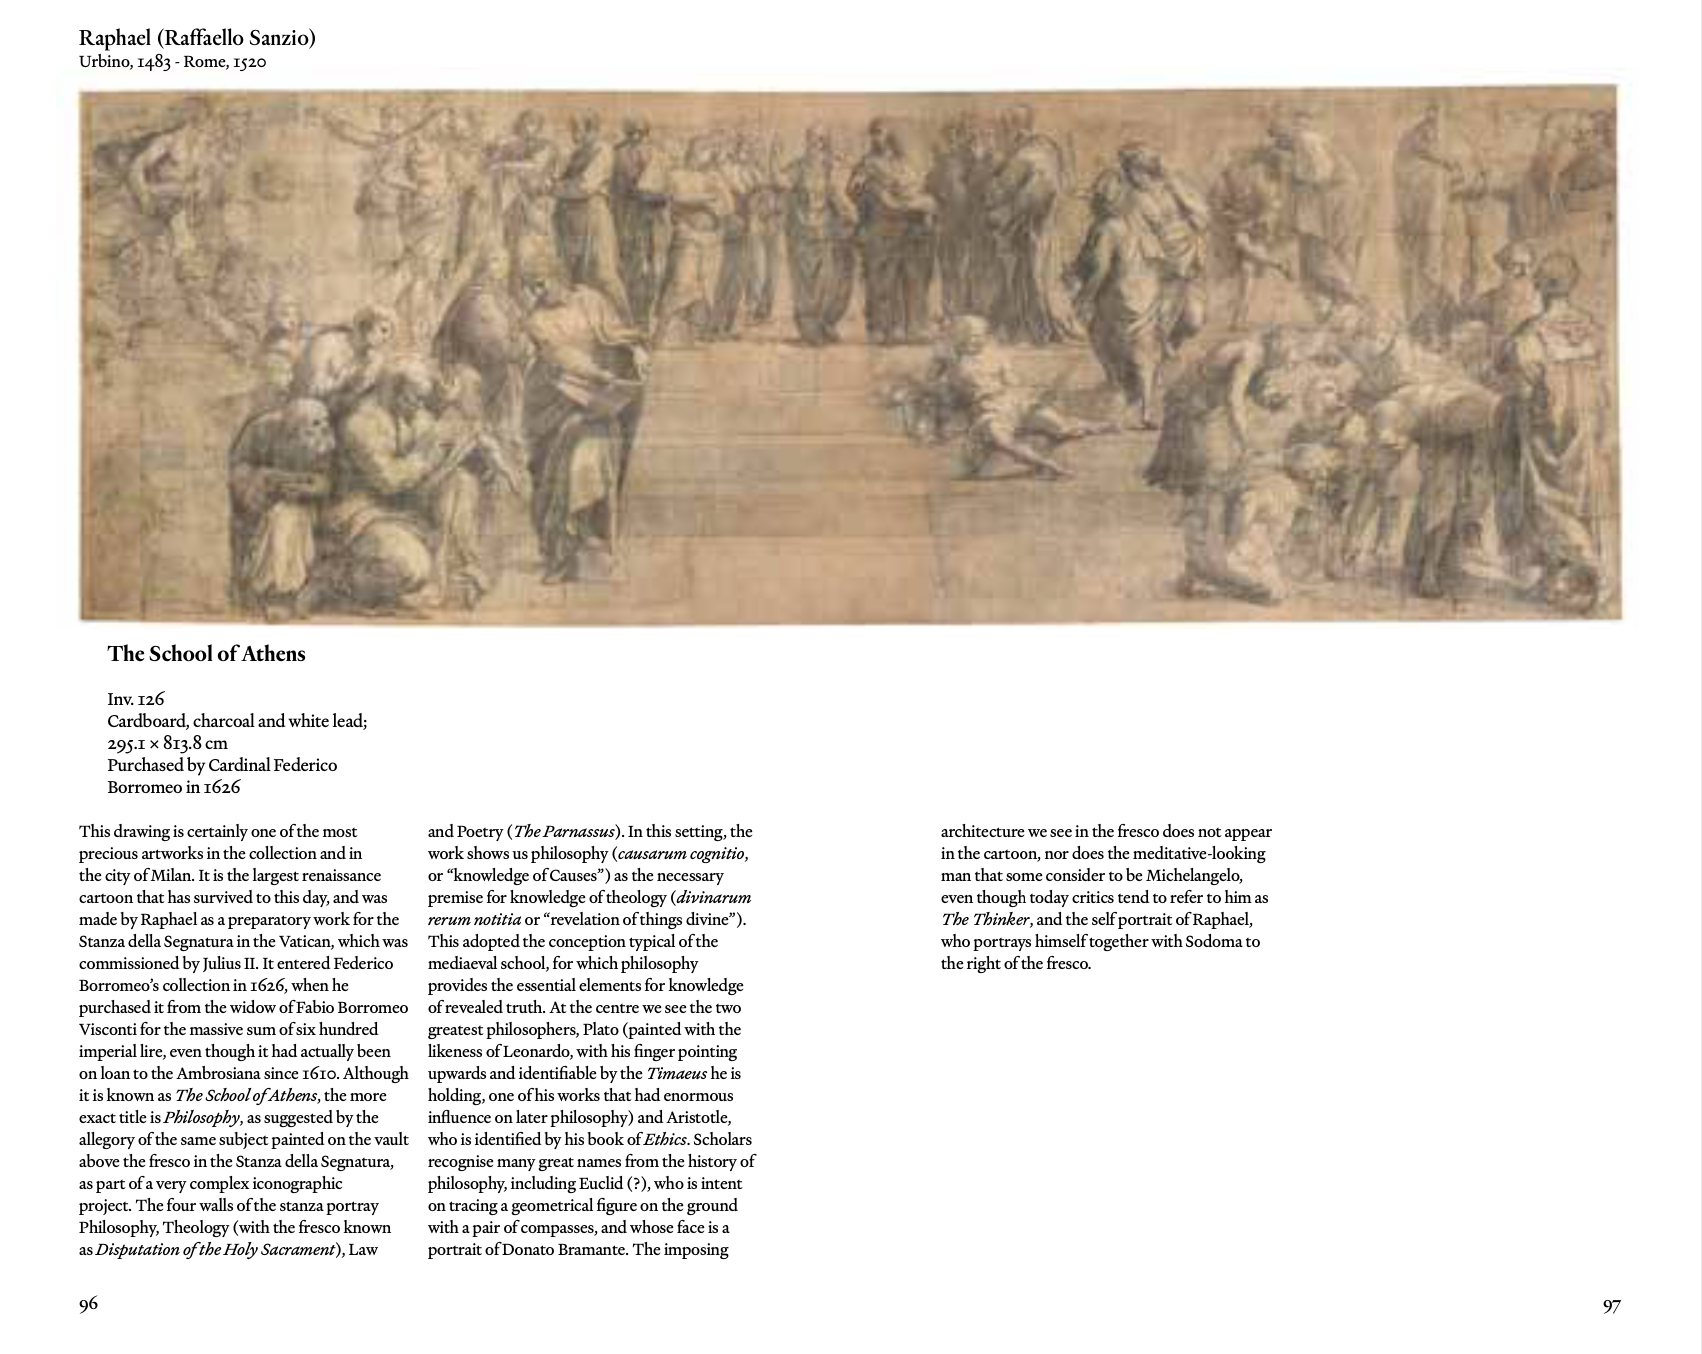 The Pinacoteca Ambrosiana Guide